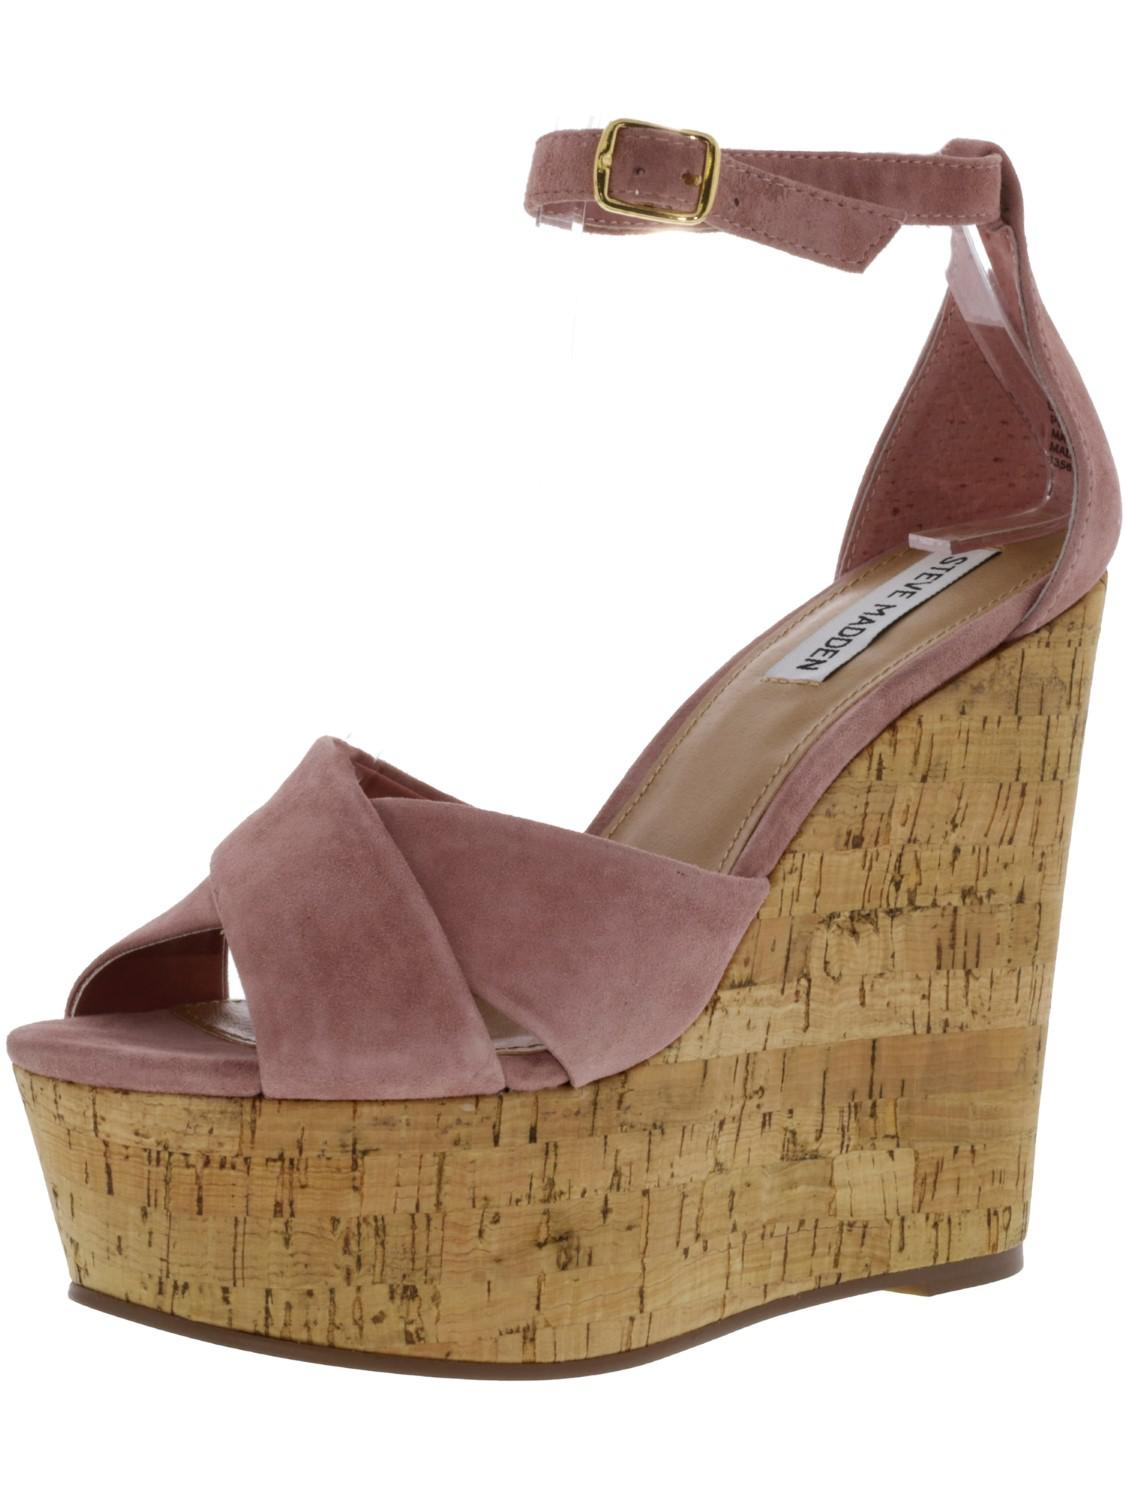 a55c5aac54c Lyst - Steve Madden Striking Suede Wedged Sandal - 8.5m in Pink